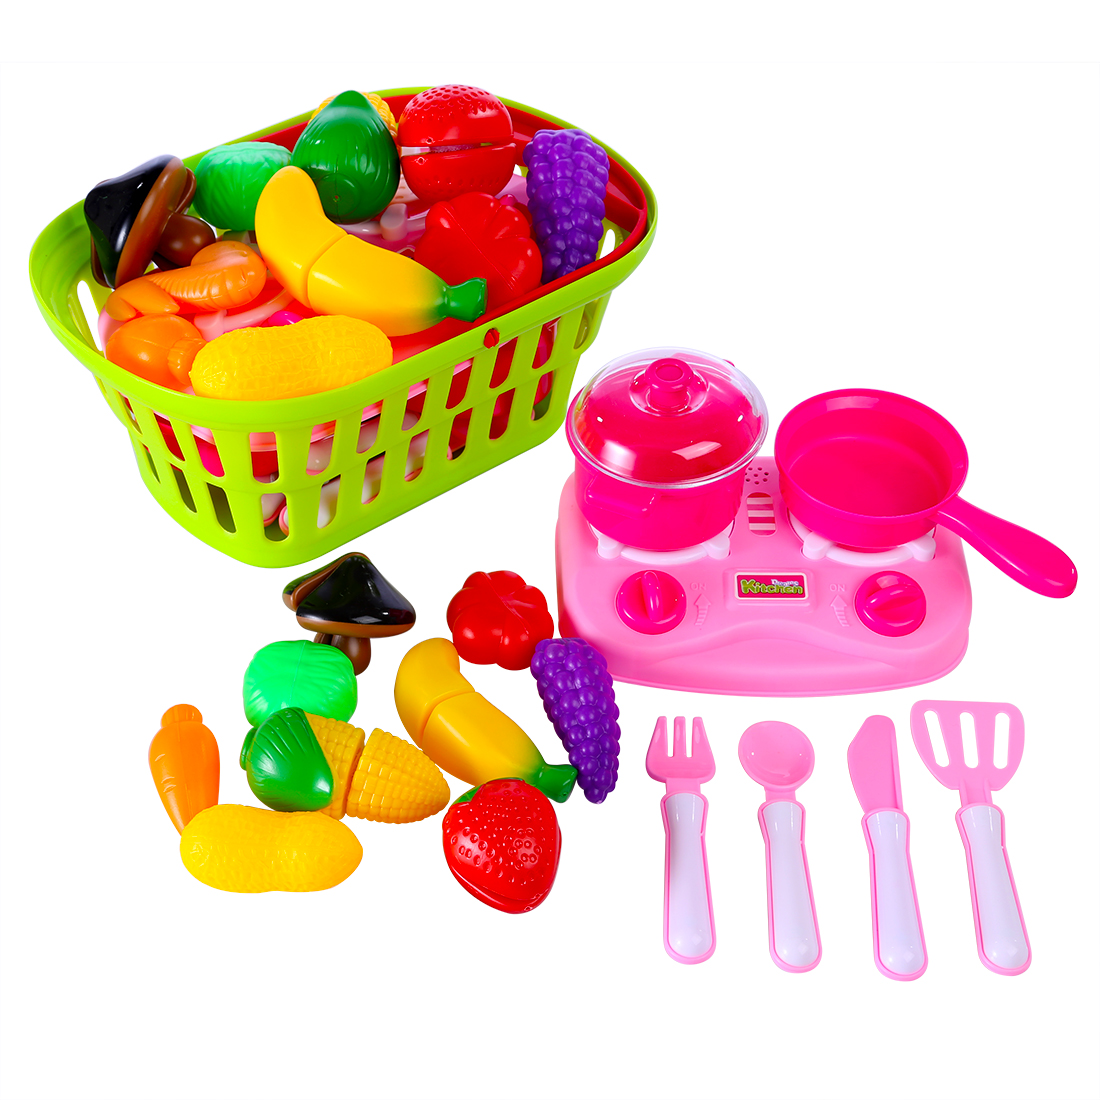 Funny Children Pretend & Play Toy Emulational Vegetables Fruits Cutting Kitchenware Set With Acousto-optic For KidsFunny Children Pretend & Play Toy Emulational Vegetables Fruits Cutting Kitchenware Set With Acousto-optic For Kids